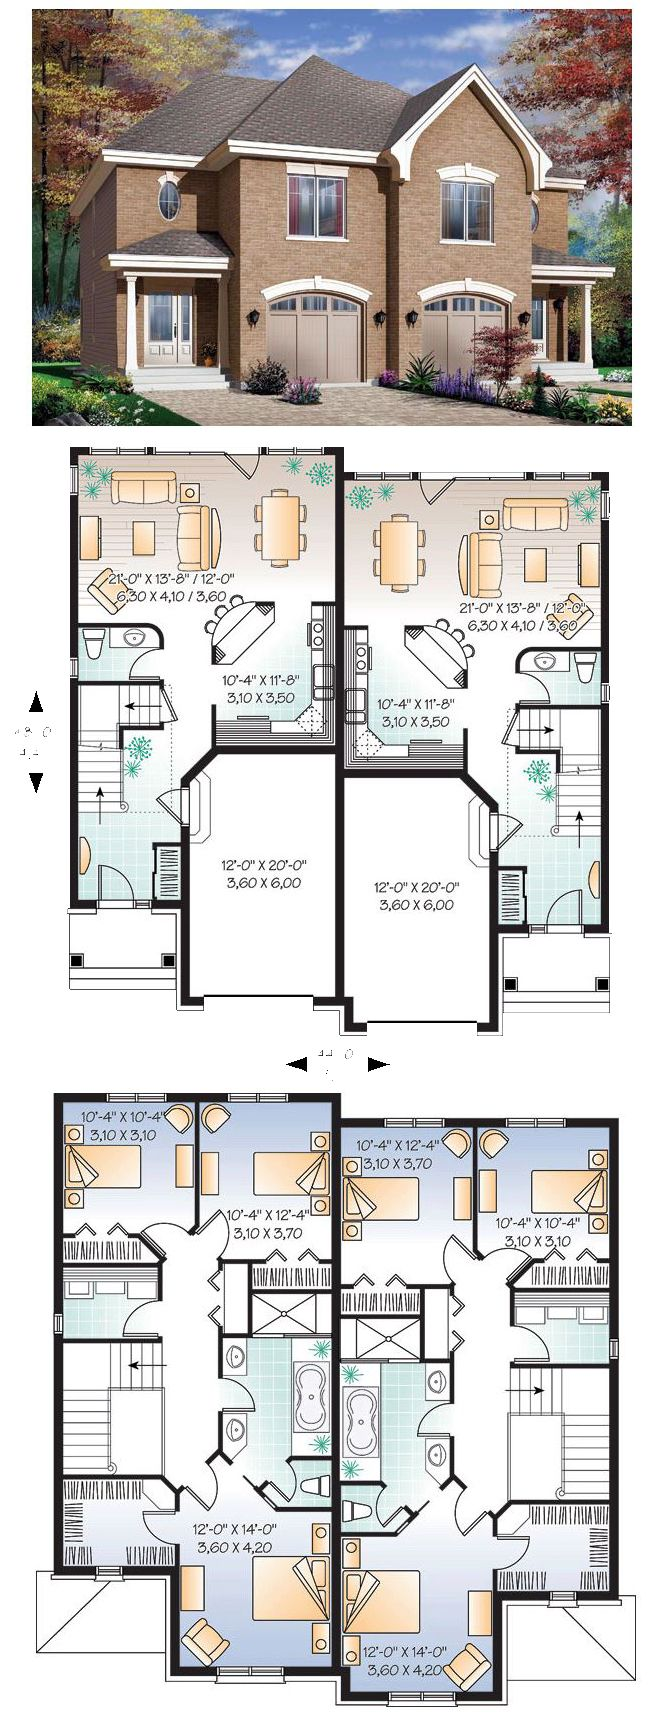 Best 25 duplex house plans ideas on pinterest duplex for Three family house plans